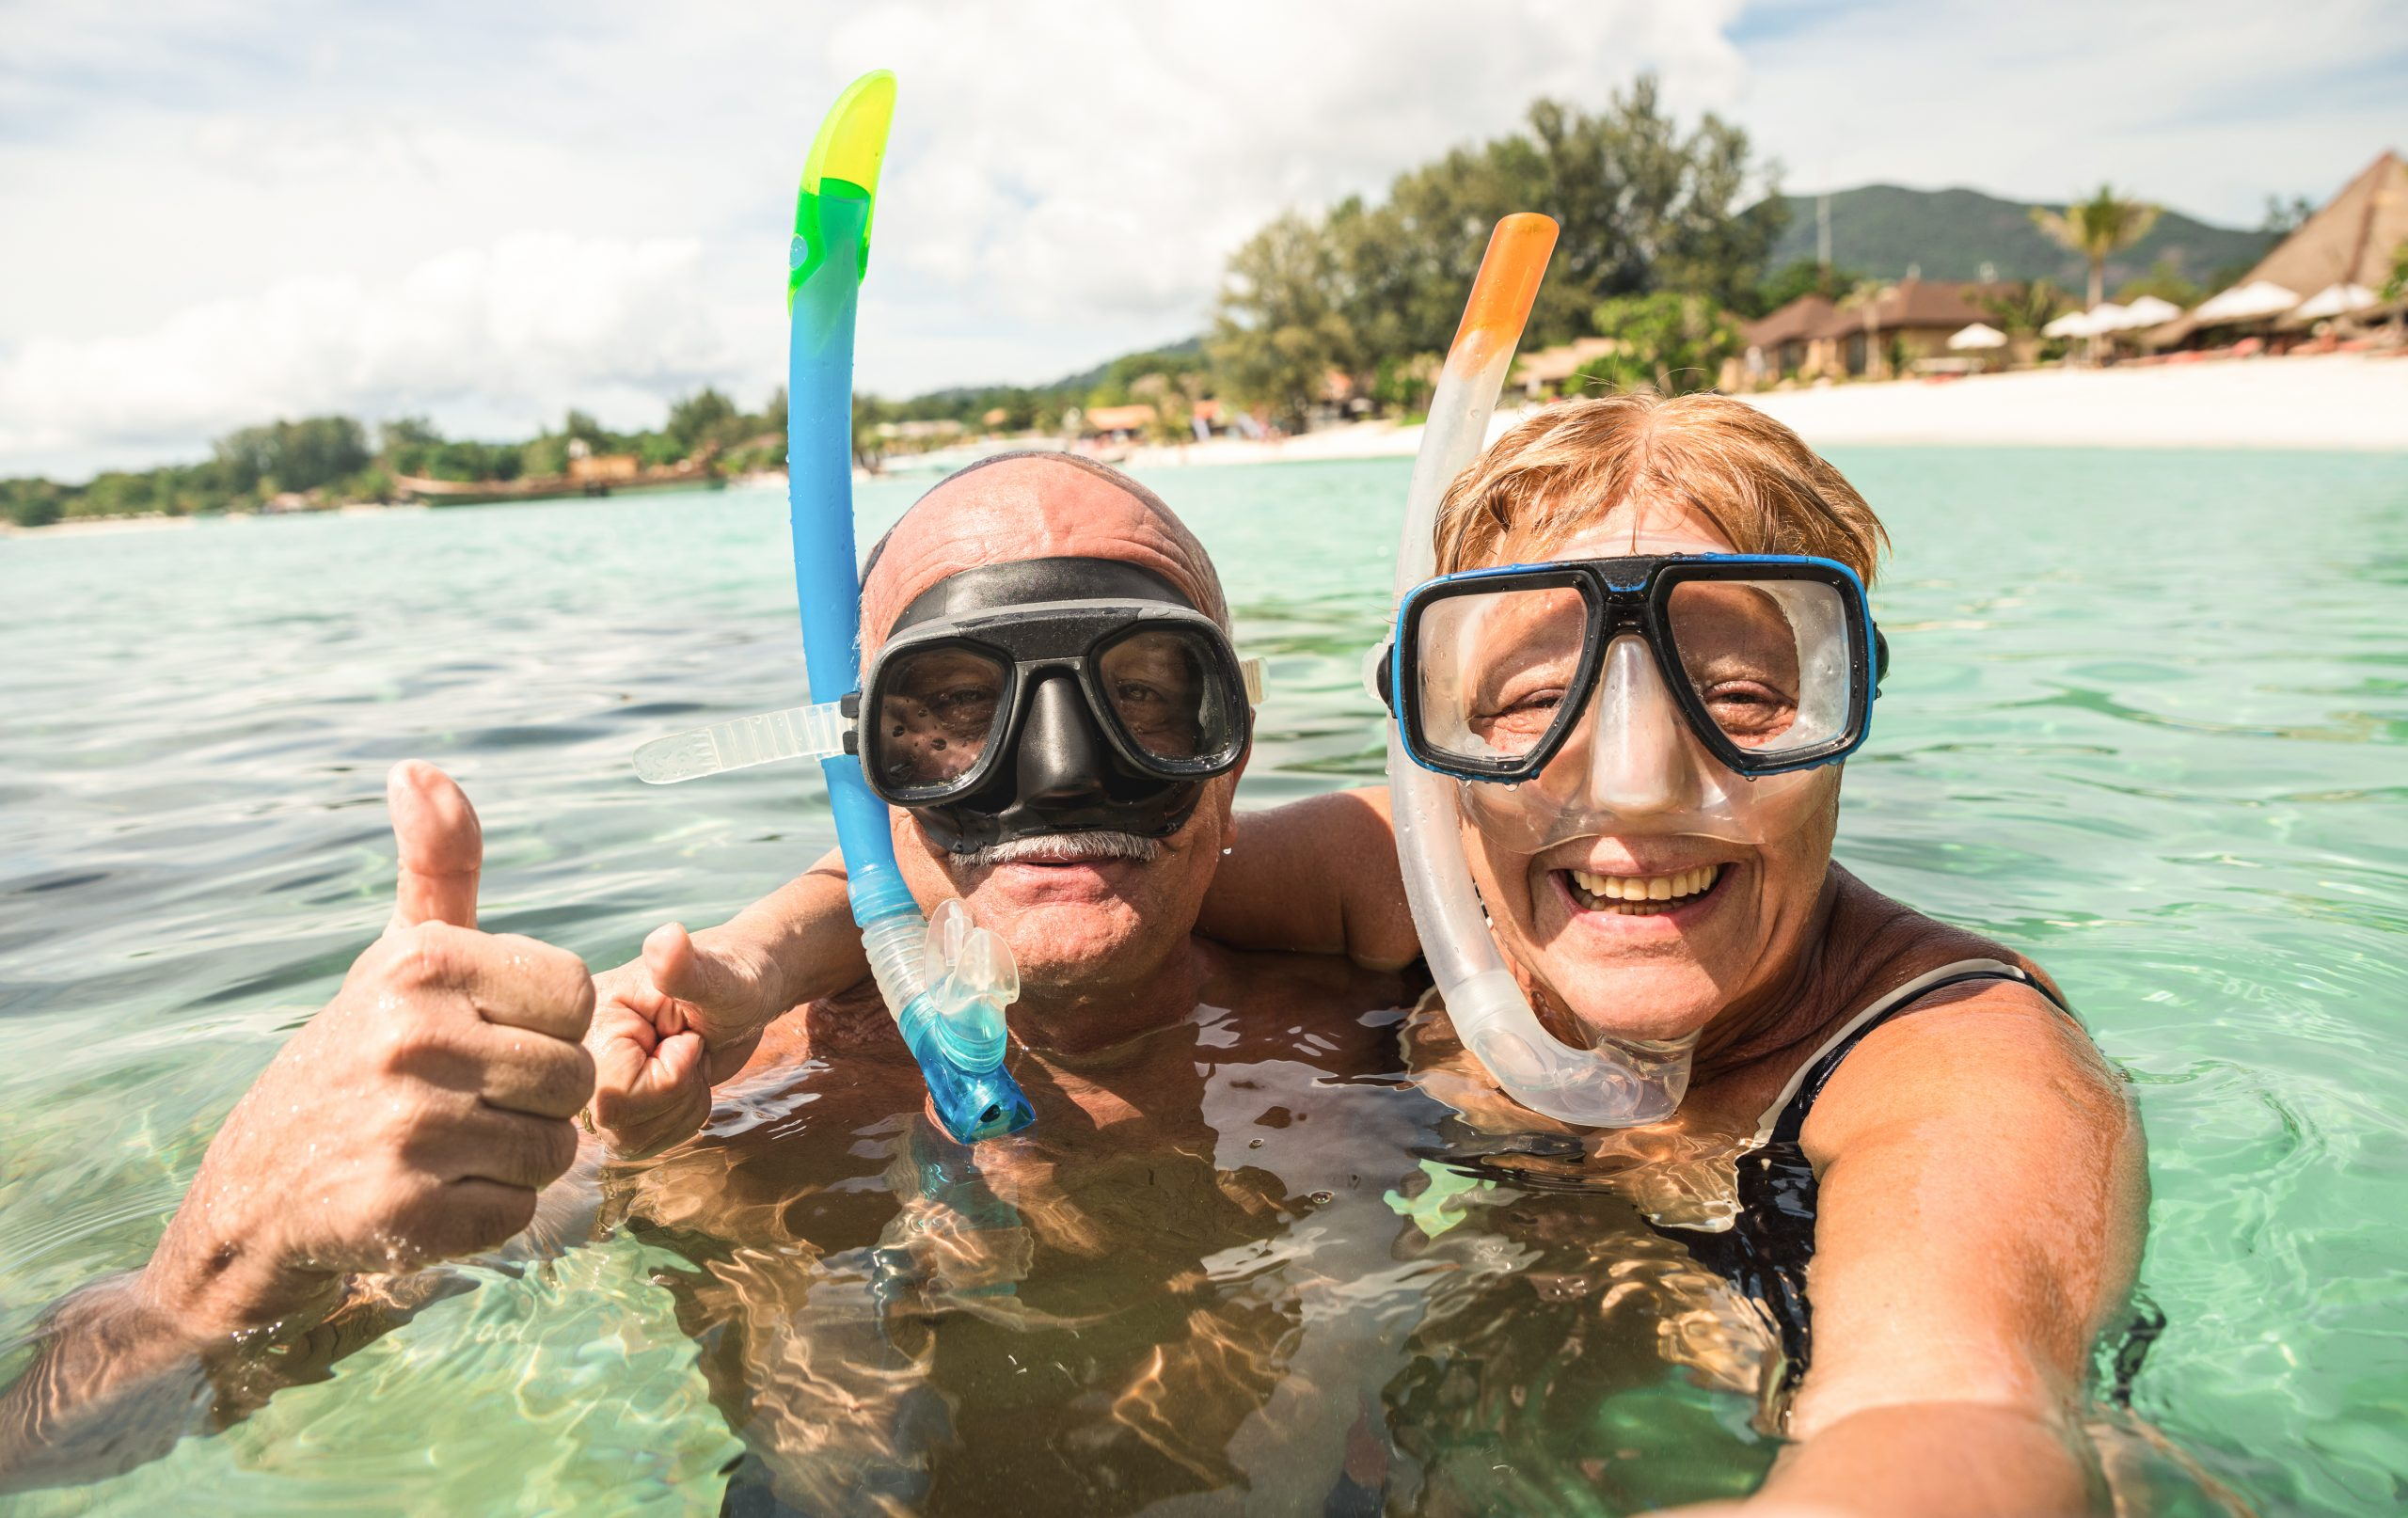 Senior,Happy,Couple,Taking,Selfie,In,Tropical,Sea,Excursion,With